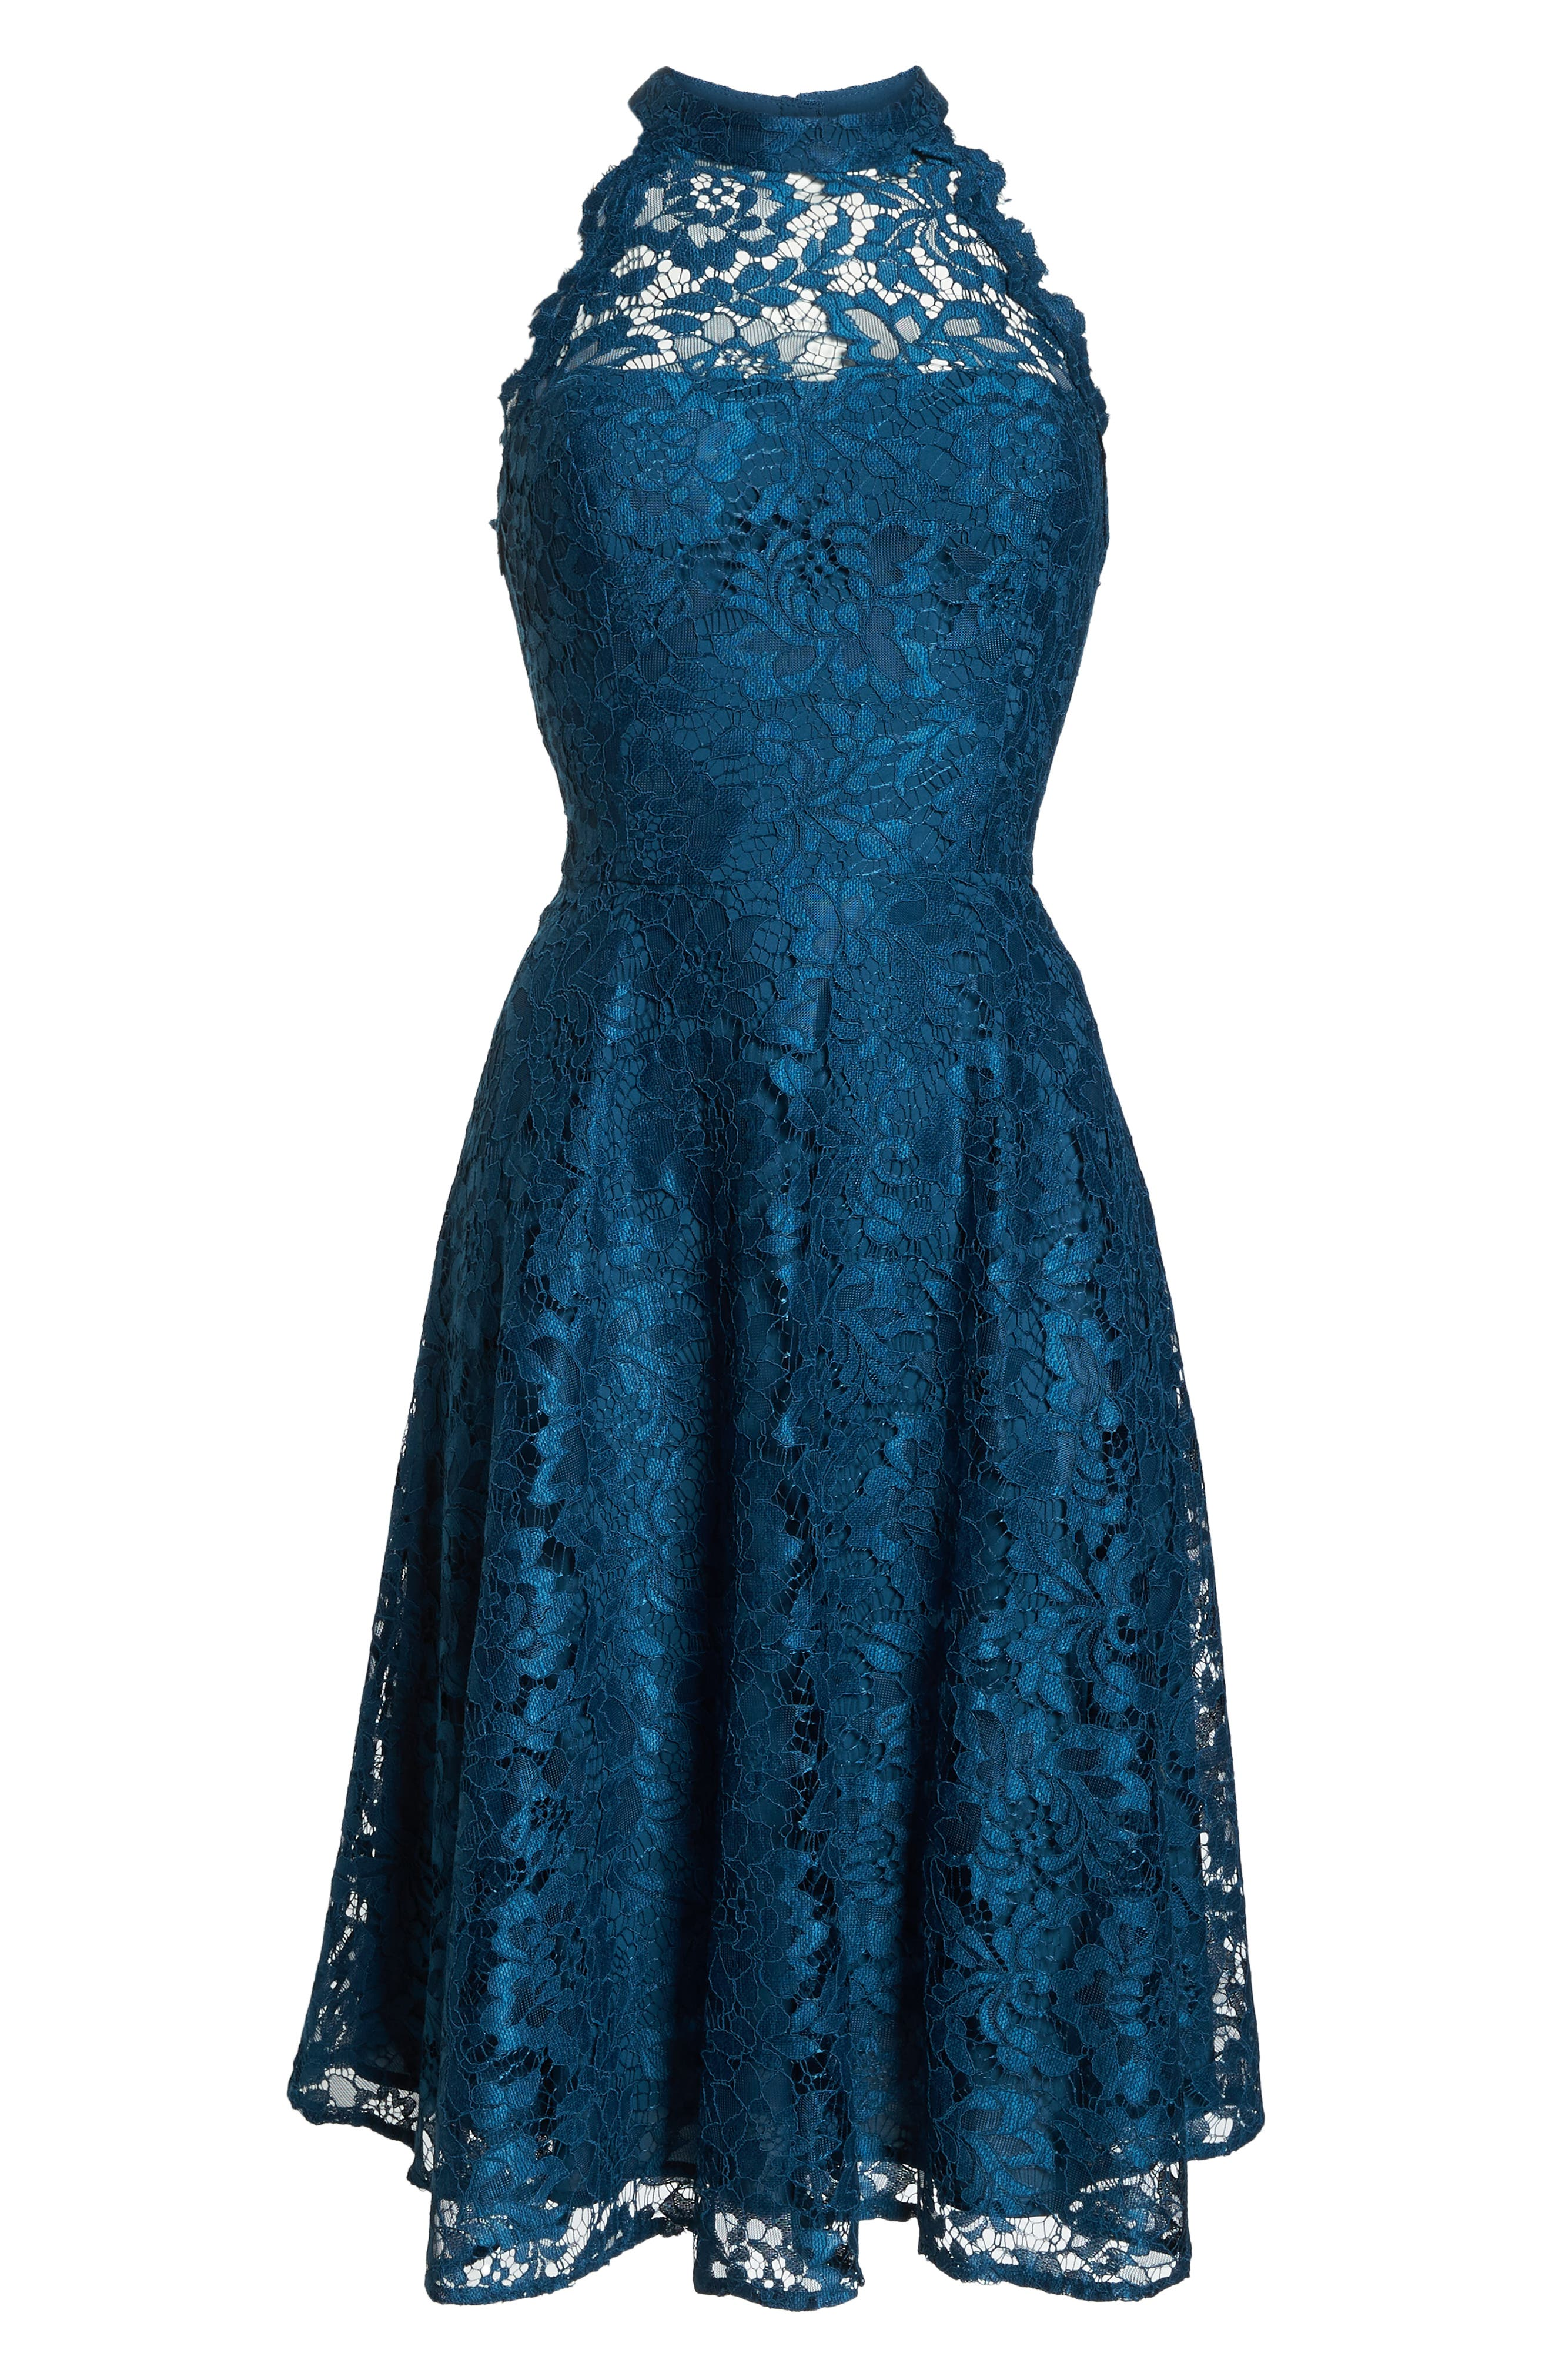 Halter Neck Lace Fit and Flare Dress,                             Alternate thumbnail 7, color,                             TEAL